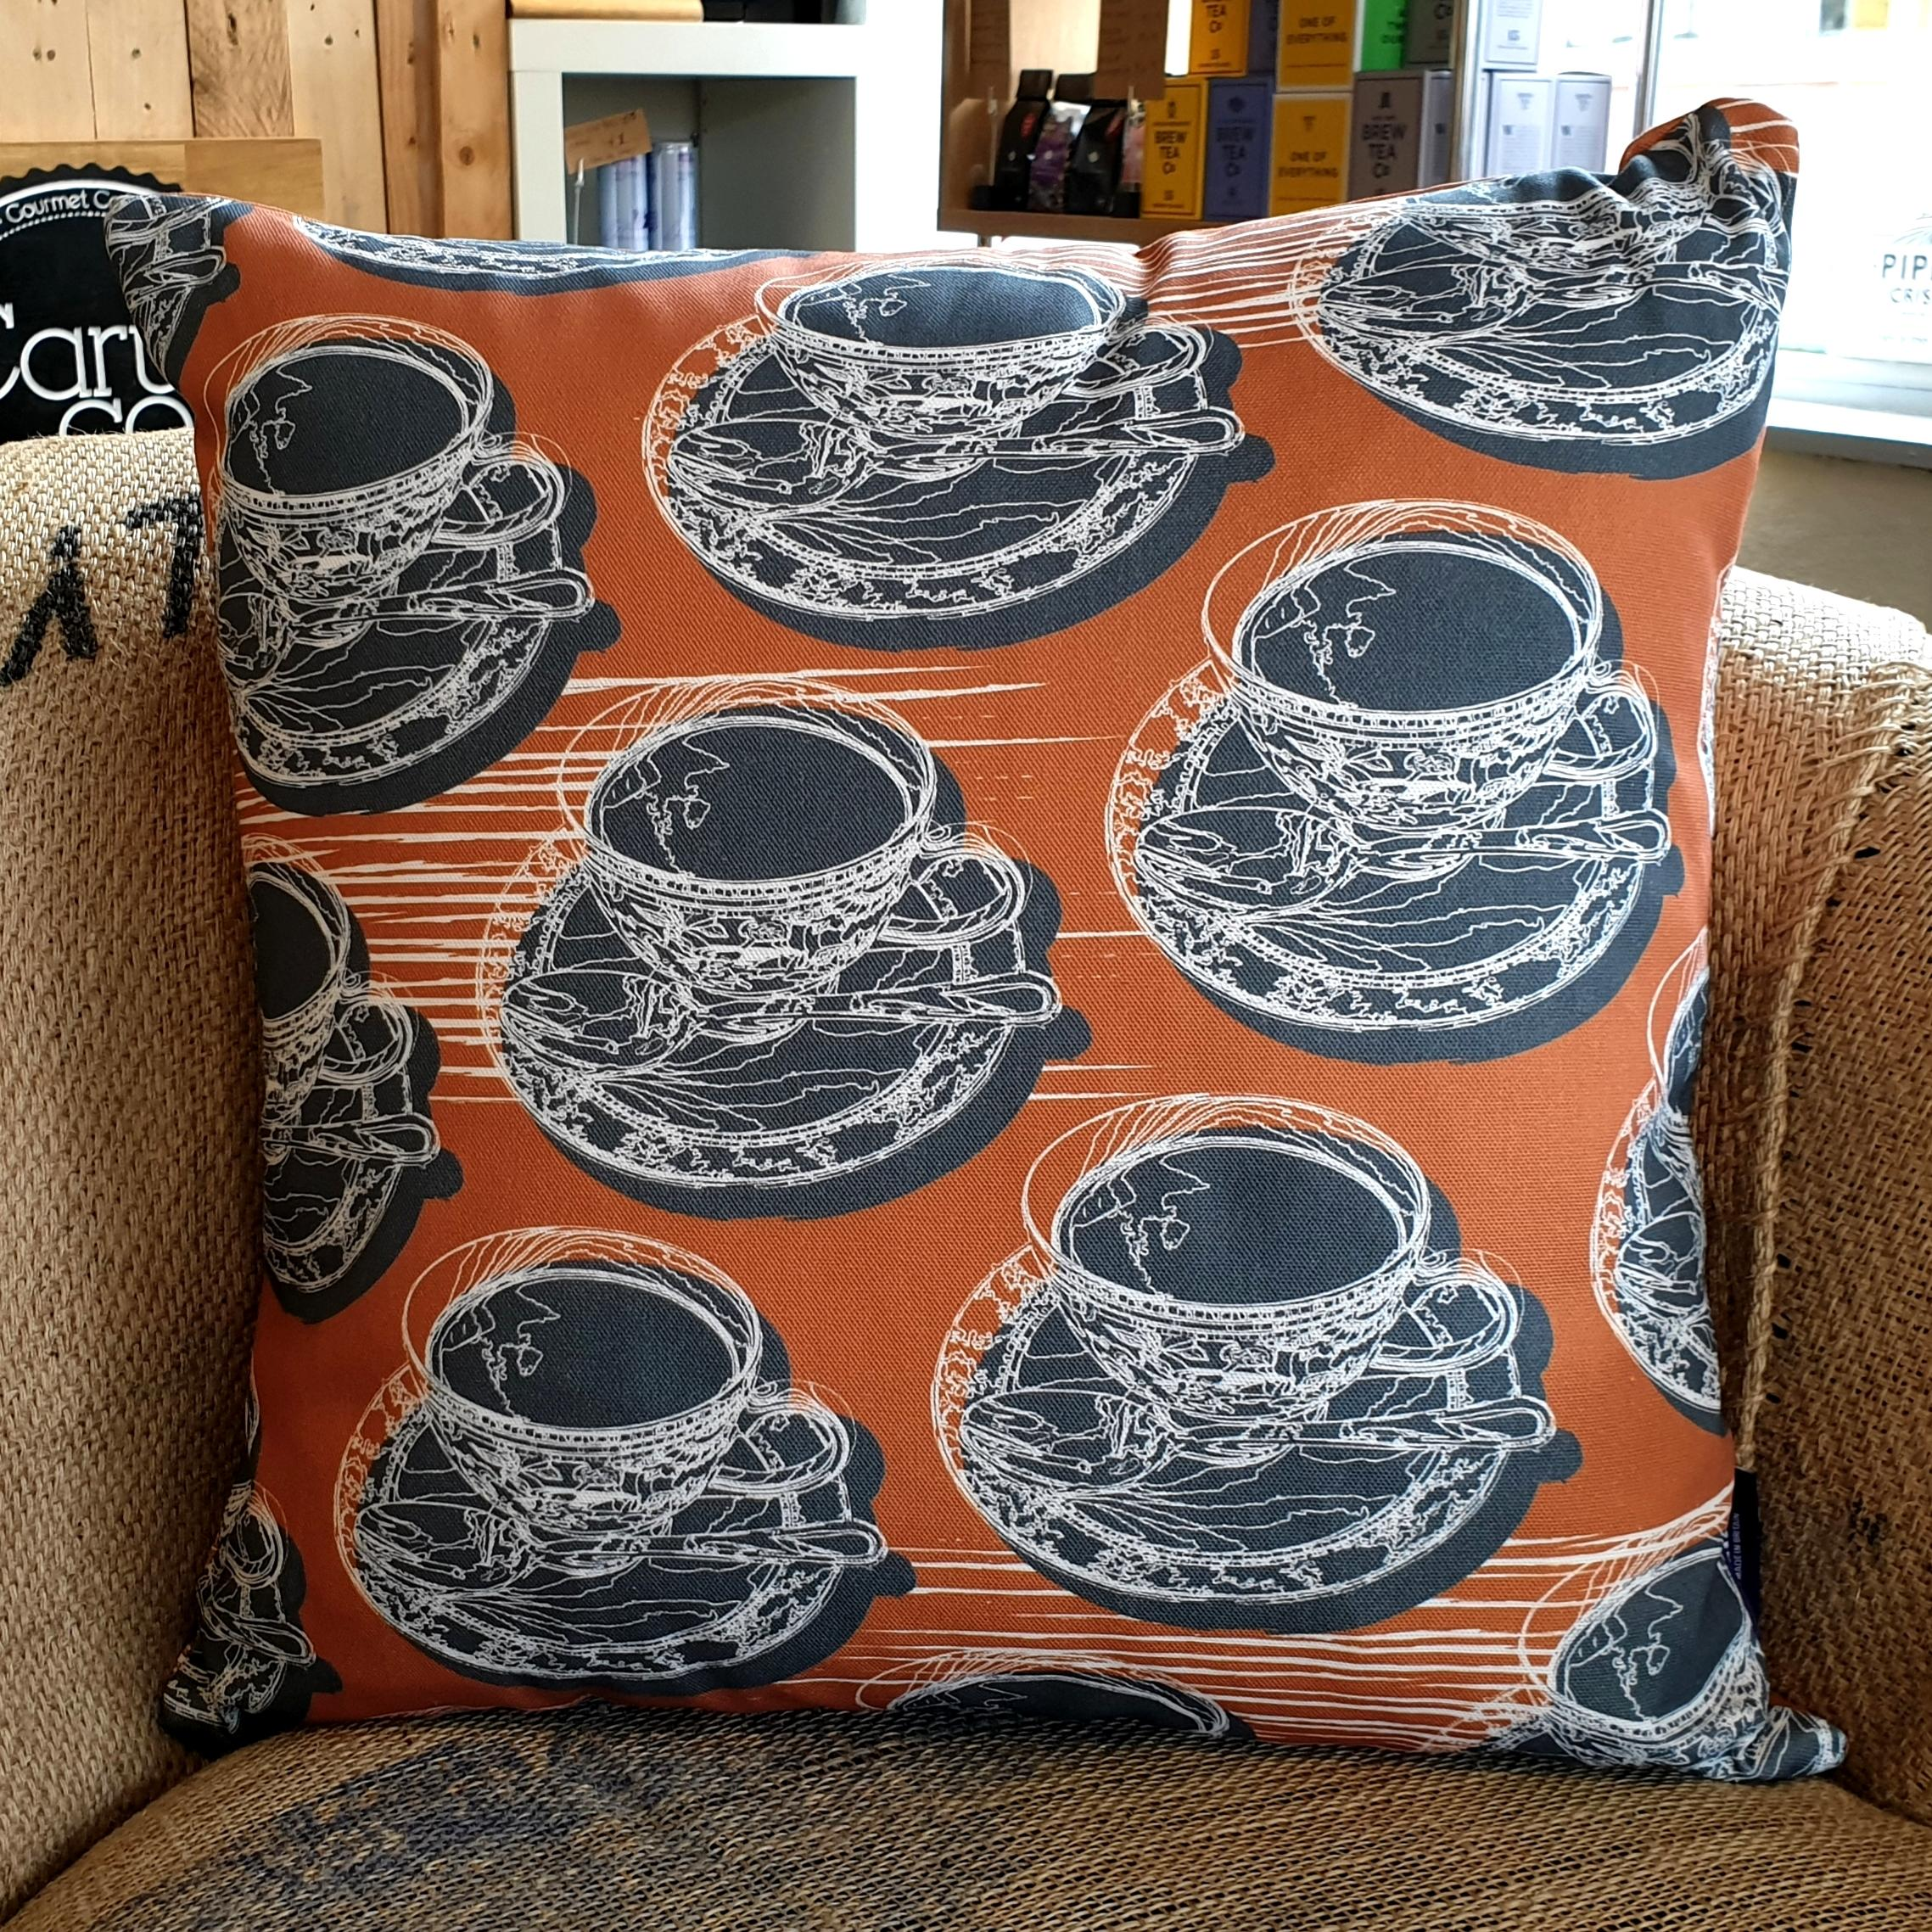 Double-sided warm rust orange 45cm square retro Afternoon Tea cushion with artistic white shards designed by thetinkan. White traced outline of multiple British teacups and saucers each colour filled in charcoal grey. Available with an optional luxury cushion inner pad. VIEW PRODUCT >>